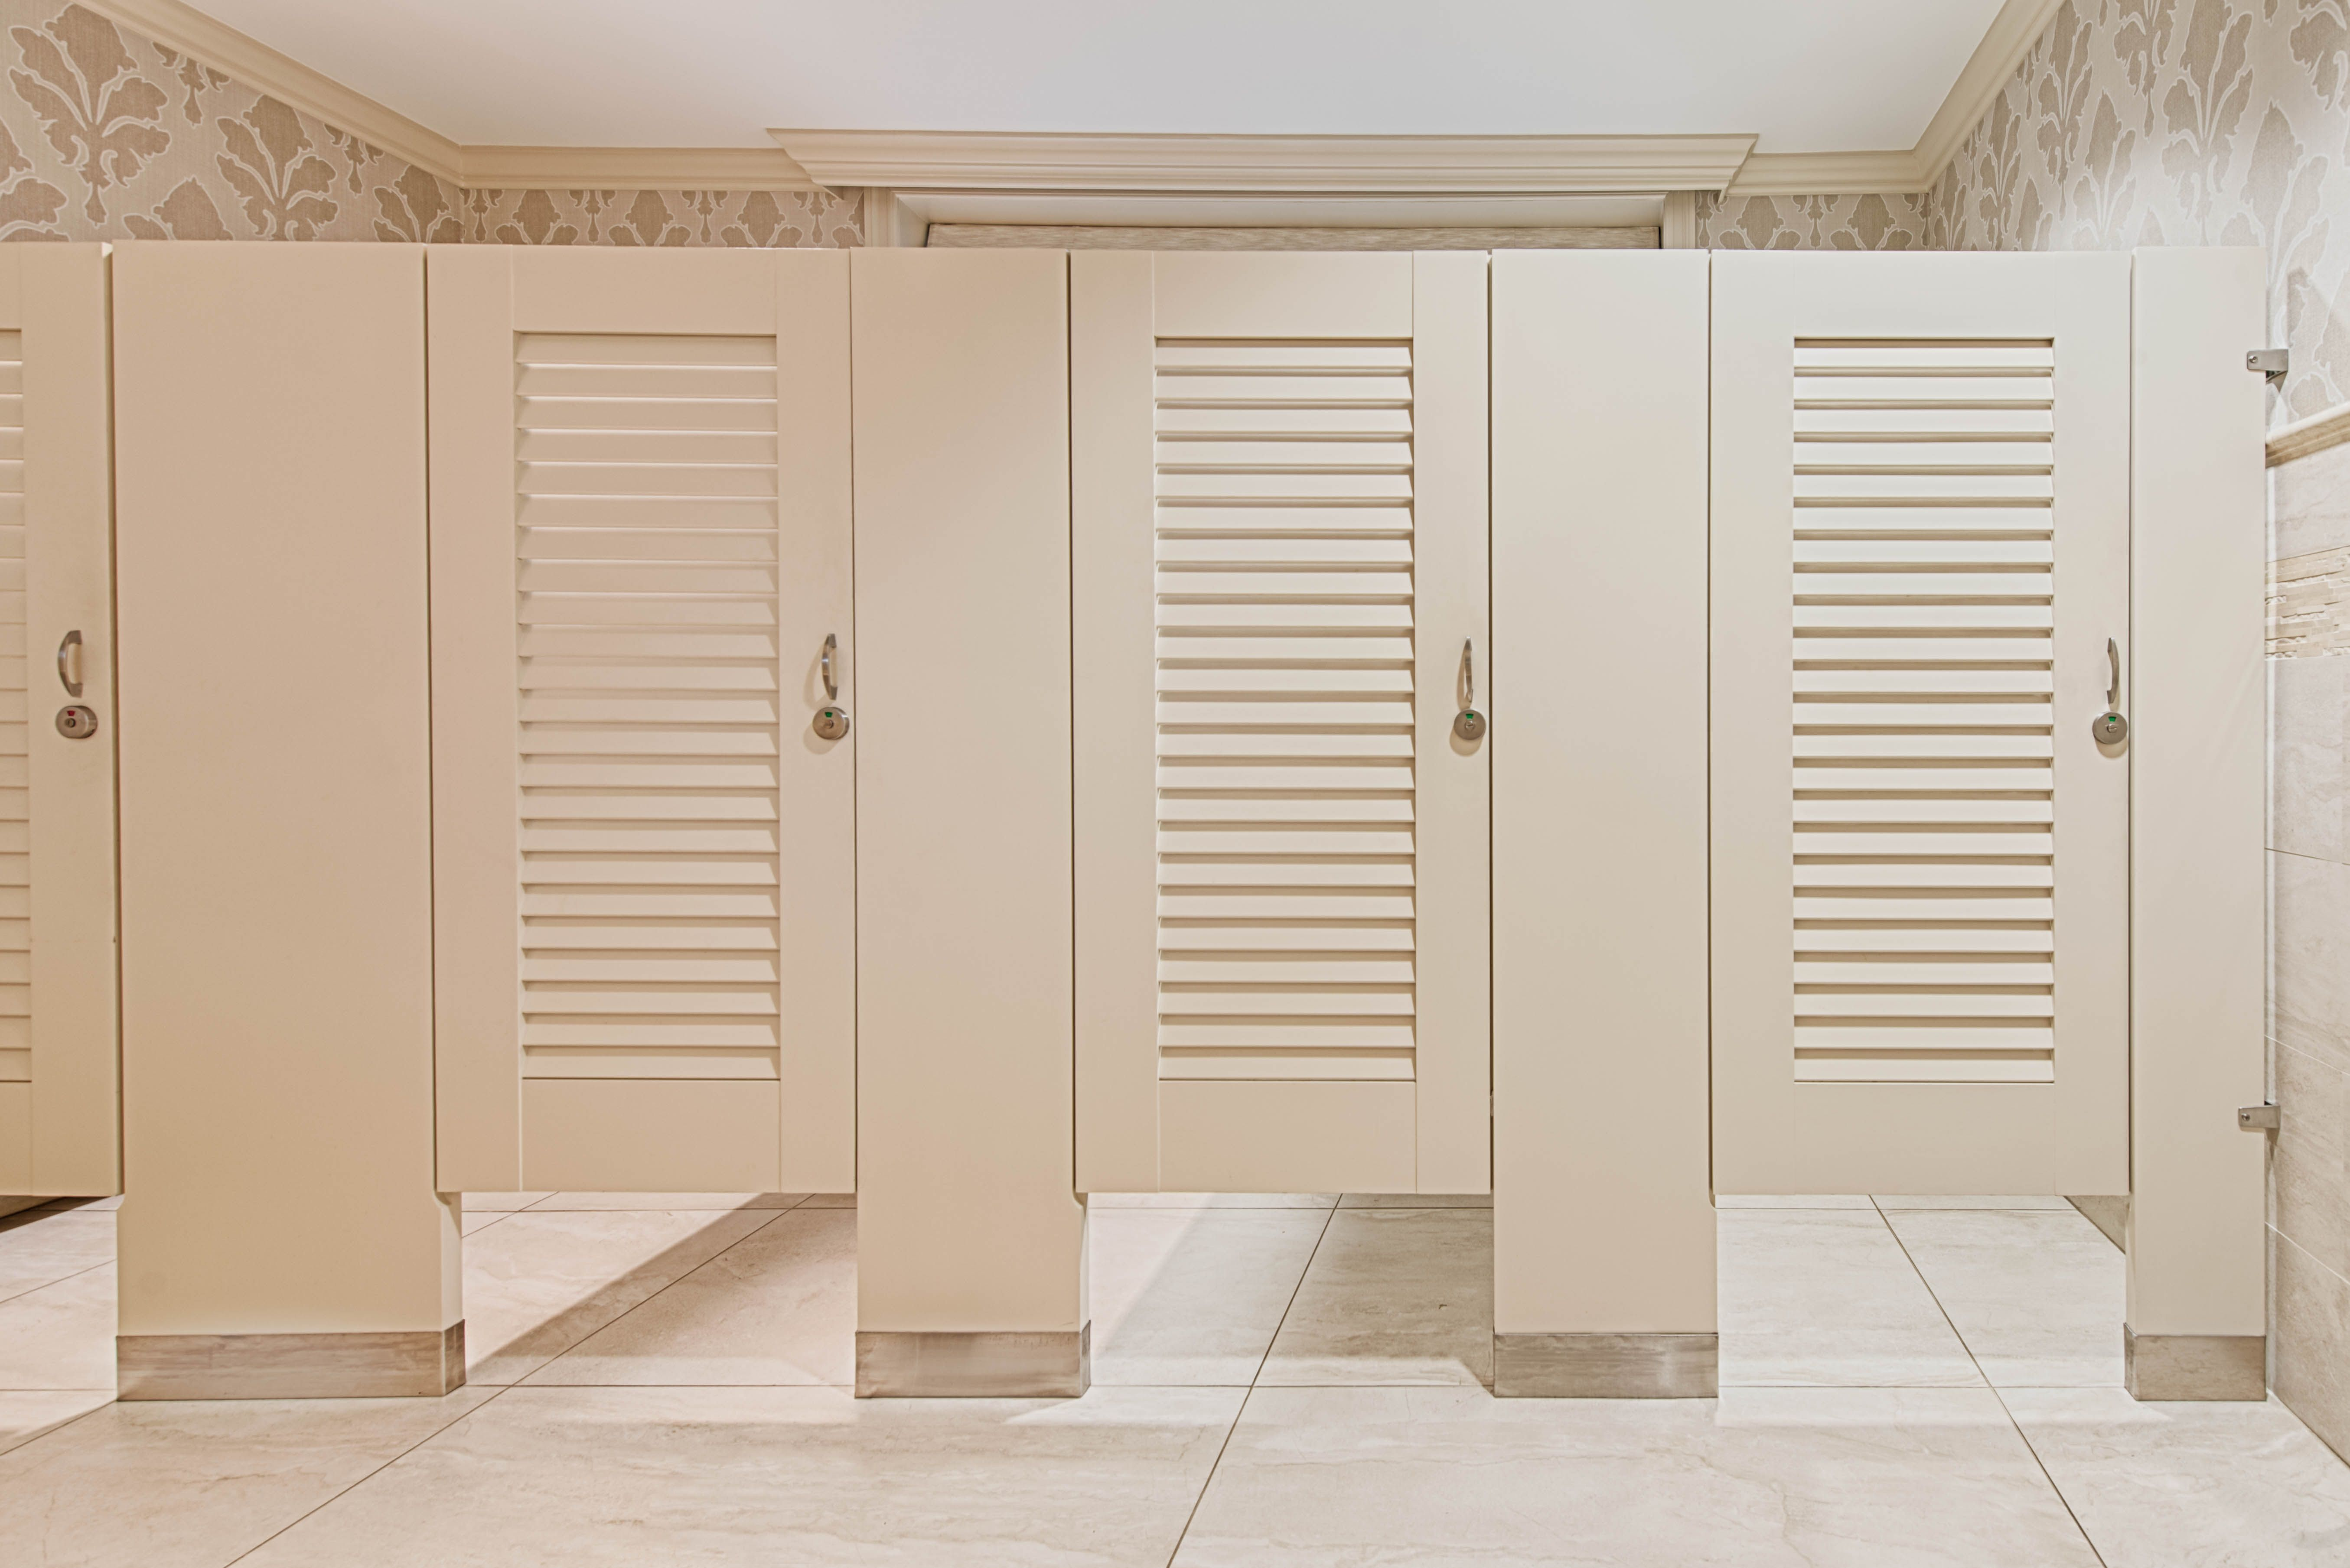 Ironwood manufacturing zero sightline louvered bathroom for Louvered bathroom stall doors